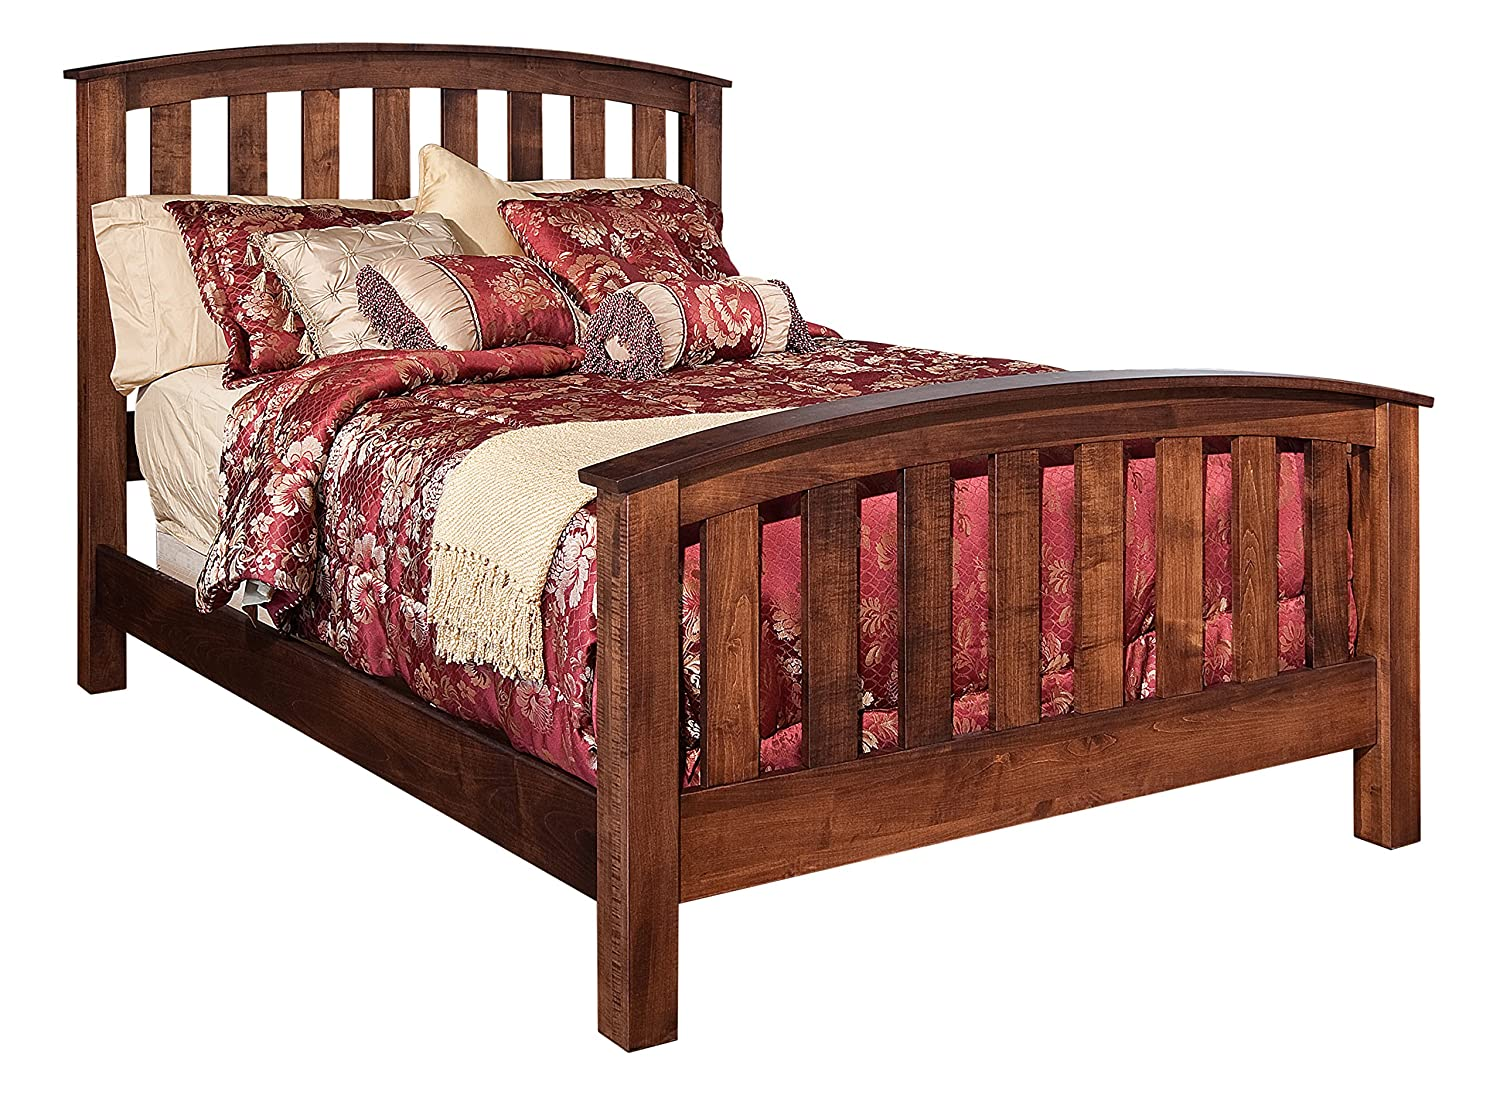 Craftsman arts craft mission bed frame set for Mission style bed frame plans